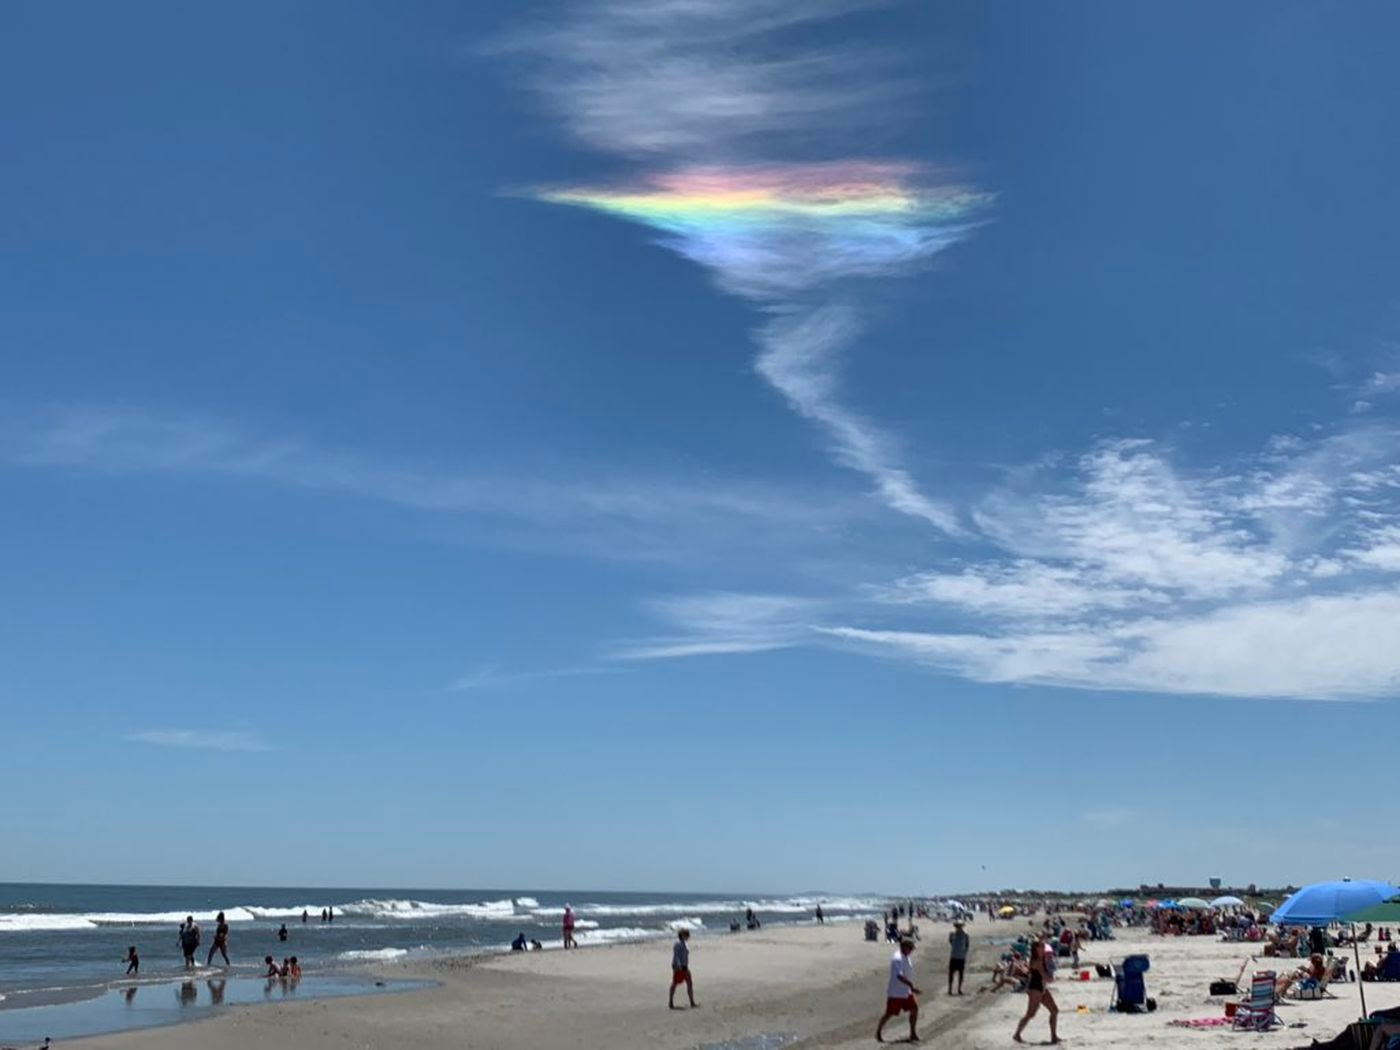 New Jersey Shore Had A Very Unsual Natural Phenomenon on Sunday: Details of the Fire Rainbow Ahead